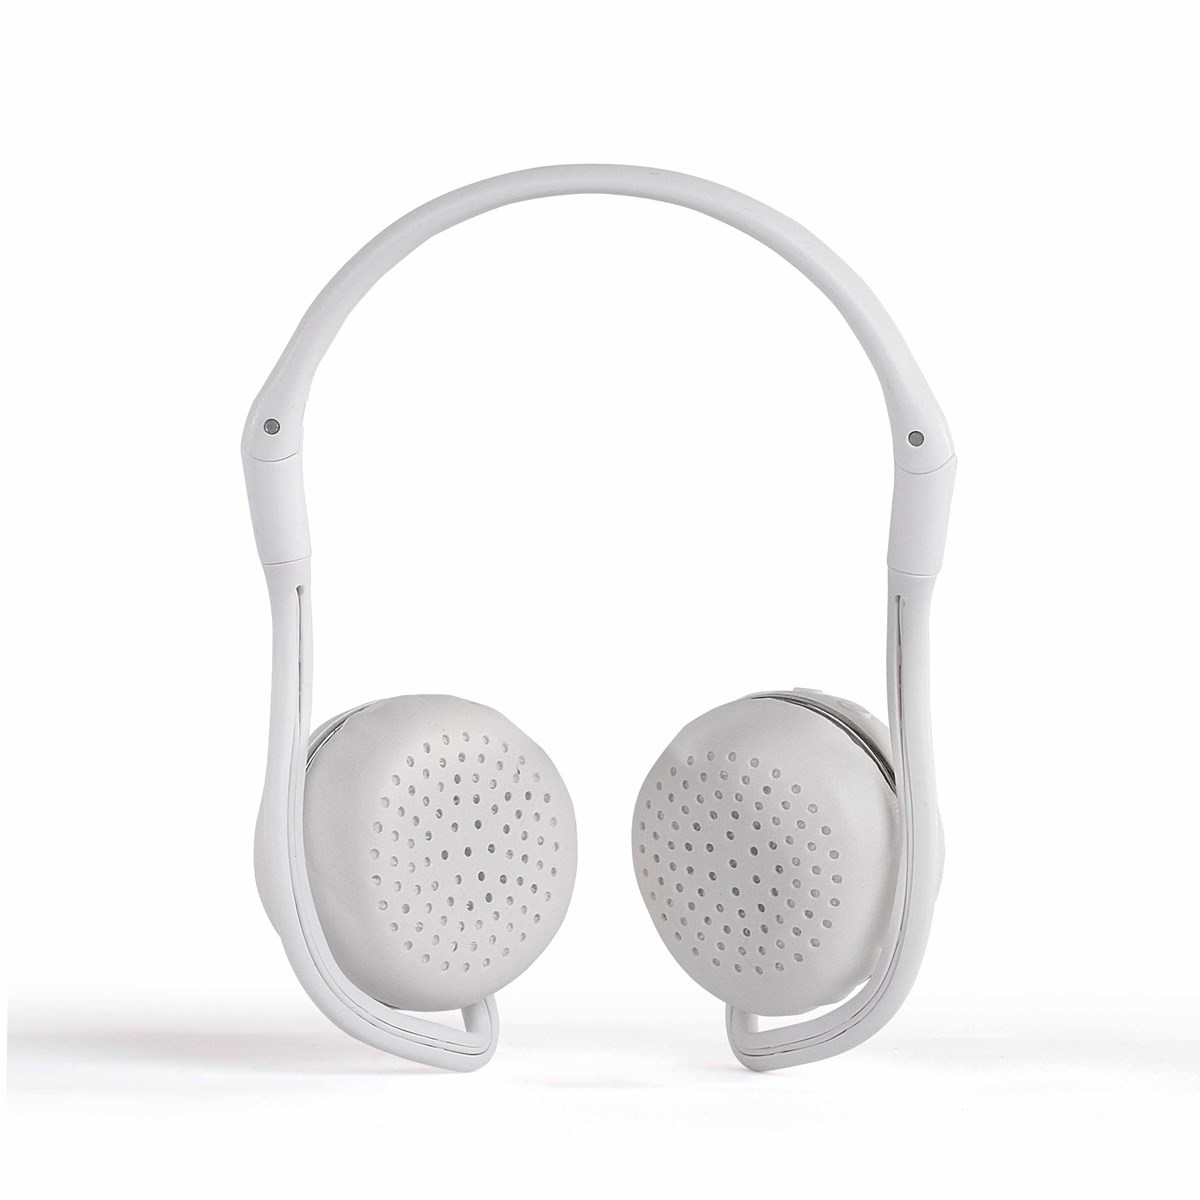 Casque sport compatible Bluetooth® en plastique blanc